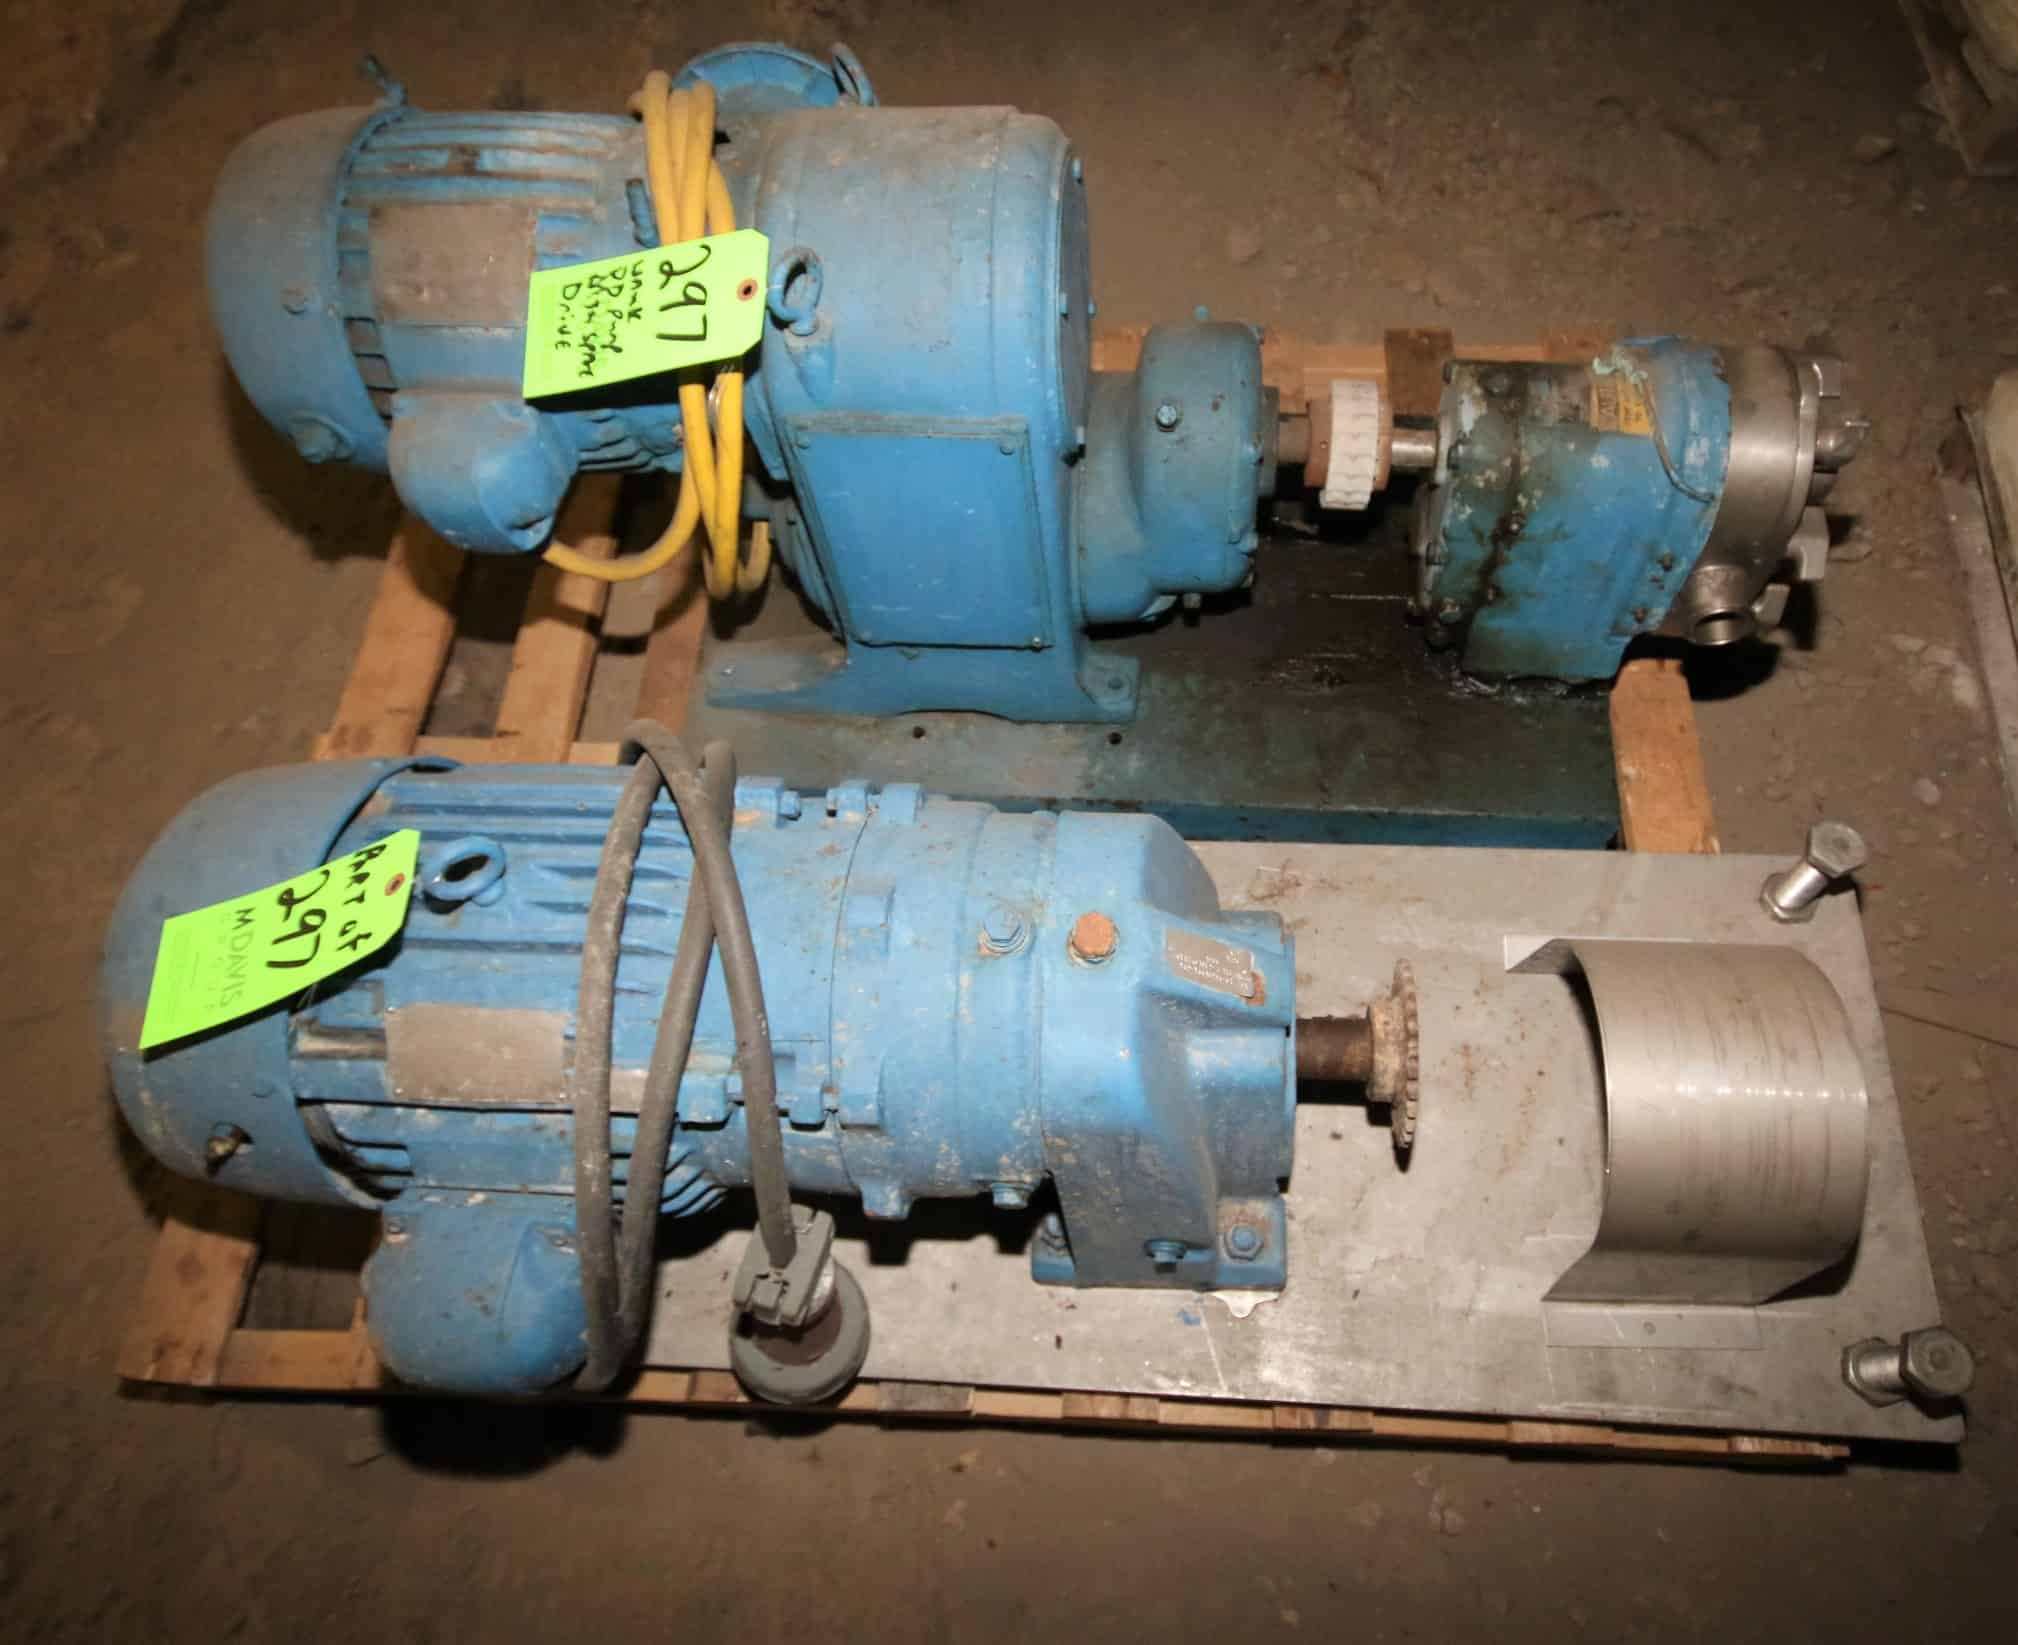 "Waukesha Size 25 Positive Displacement Pump, with 1.5"" Clamp Type S/S Head & Variable Speed Drive, Also Includes Spare Variable Speed Drive Mounted on S/S Frame"